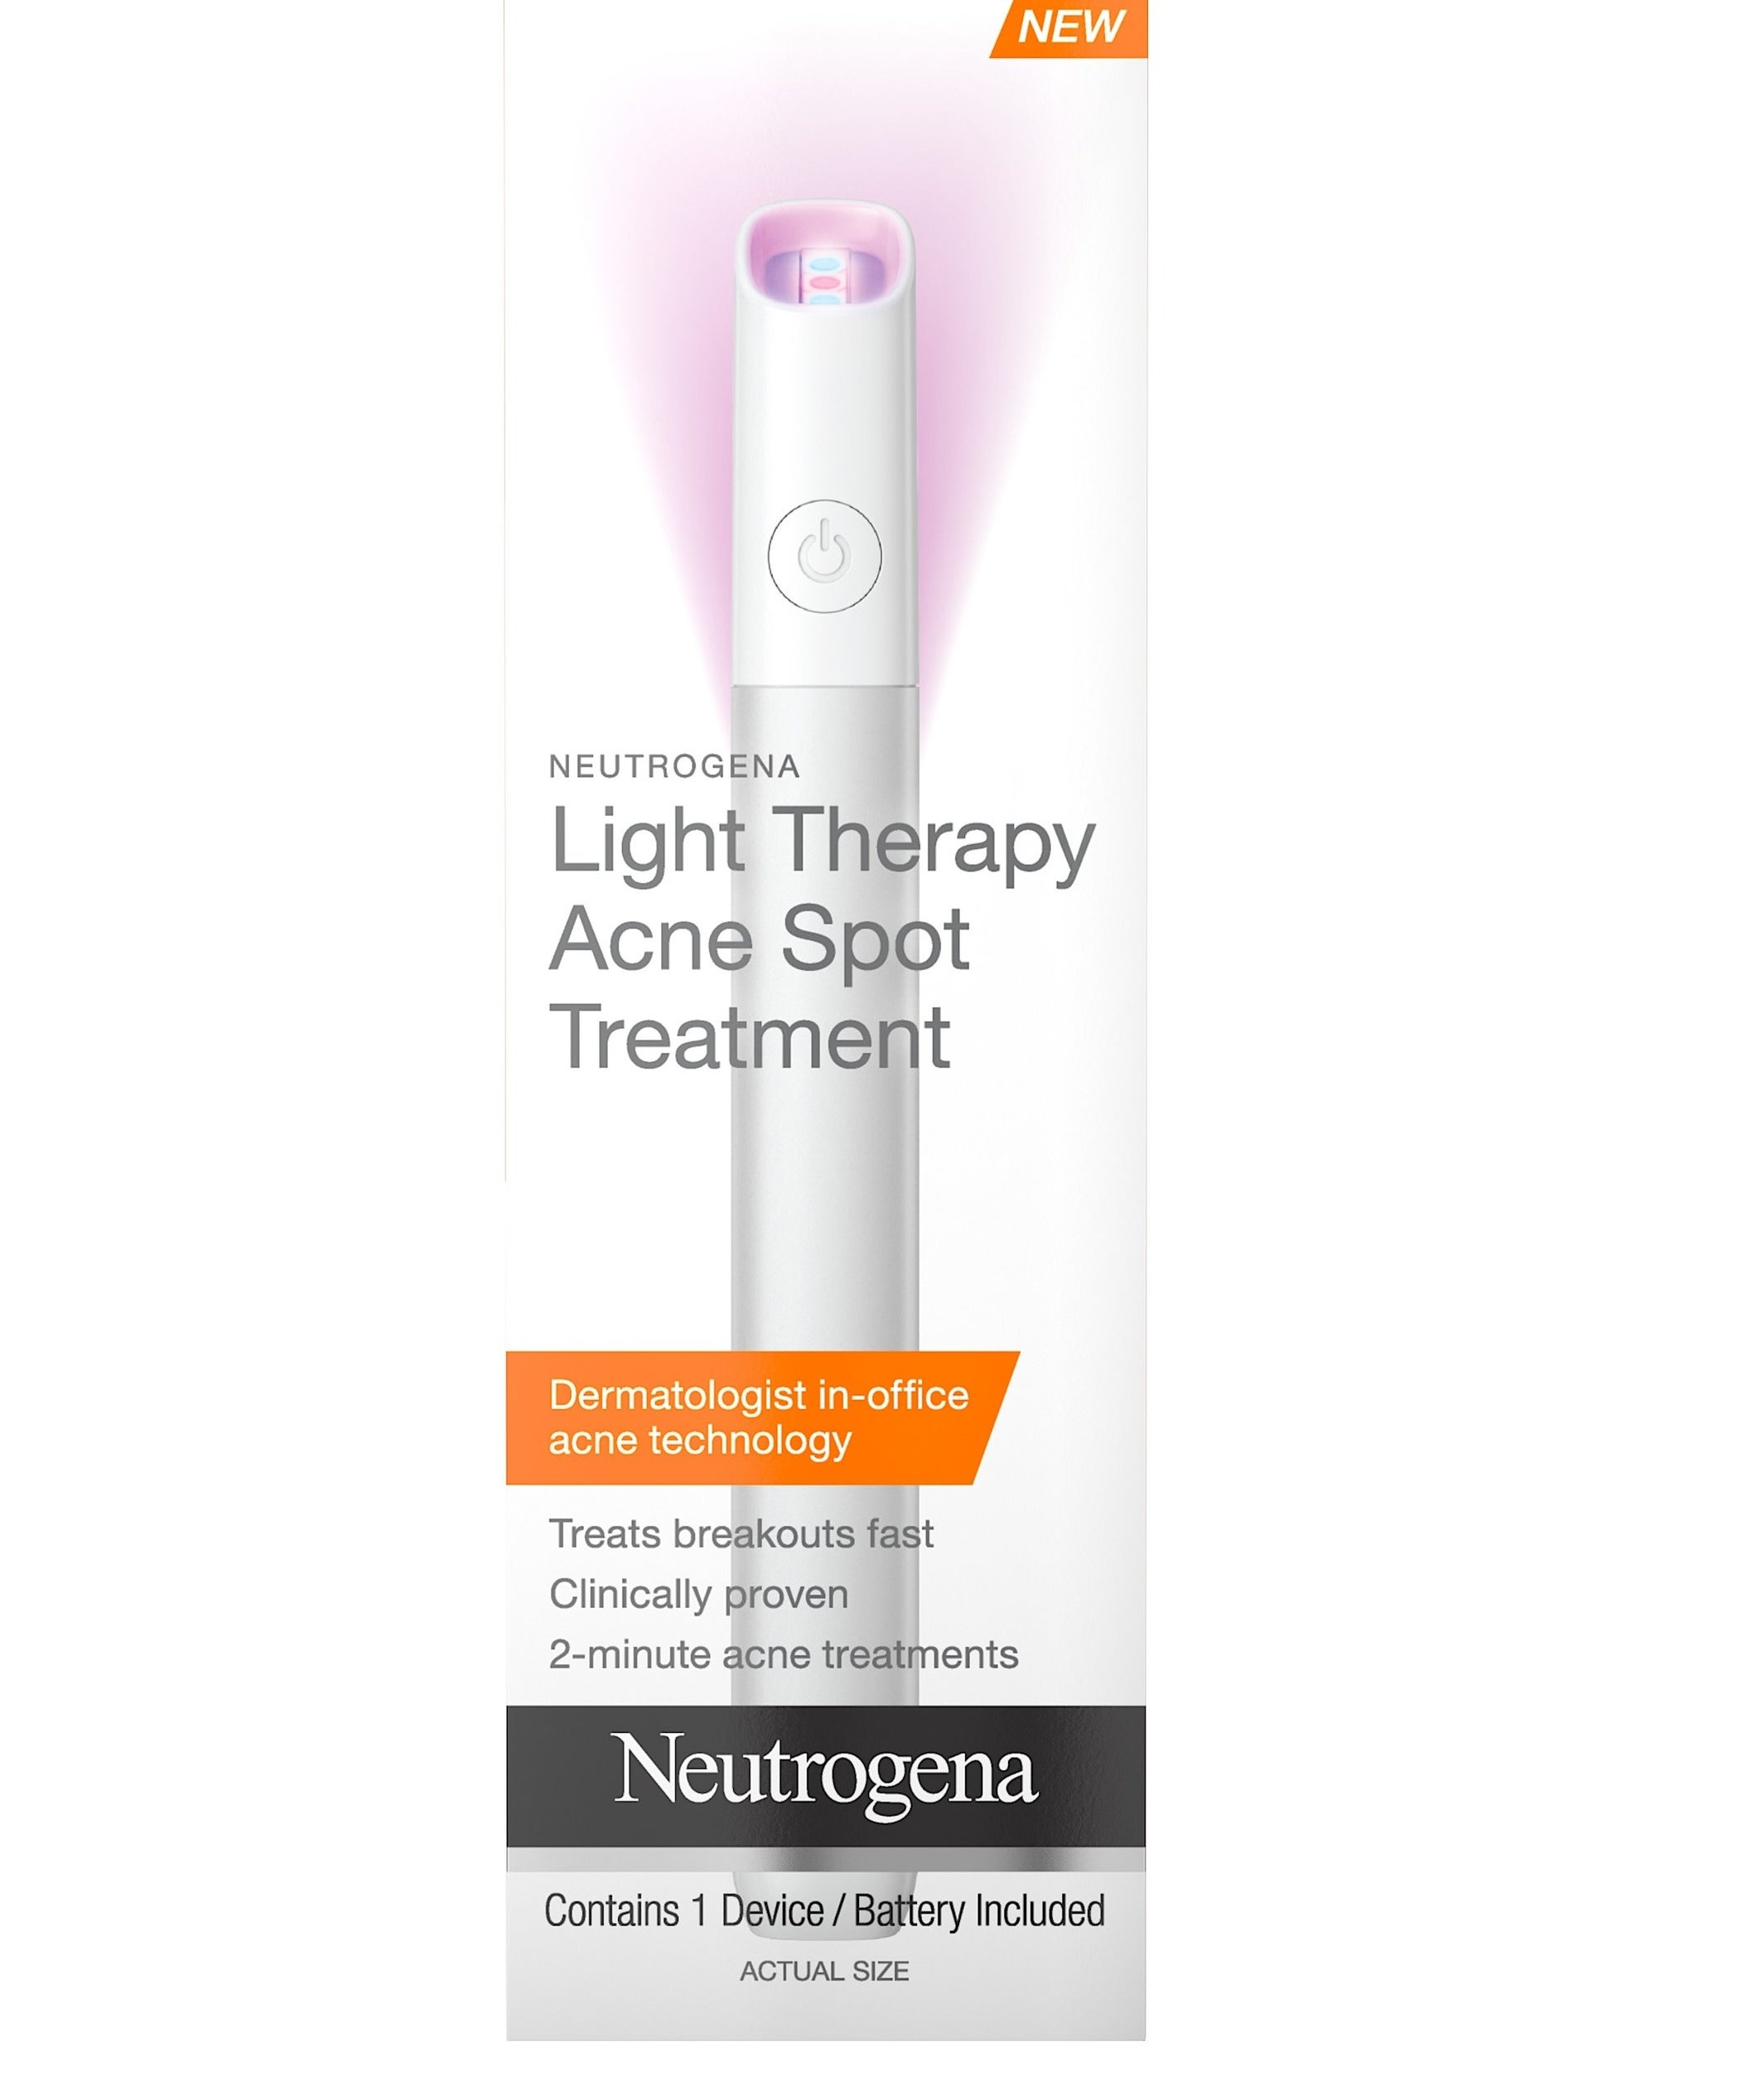 Theportable light therapy wand